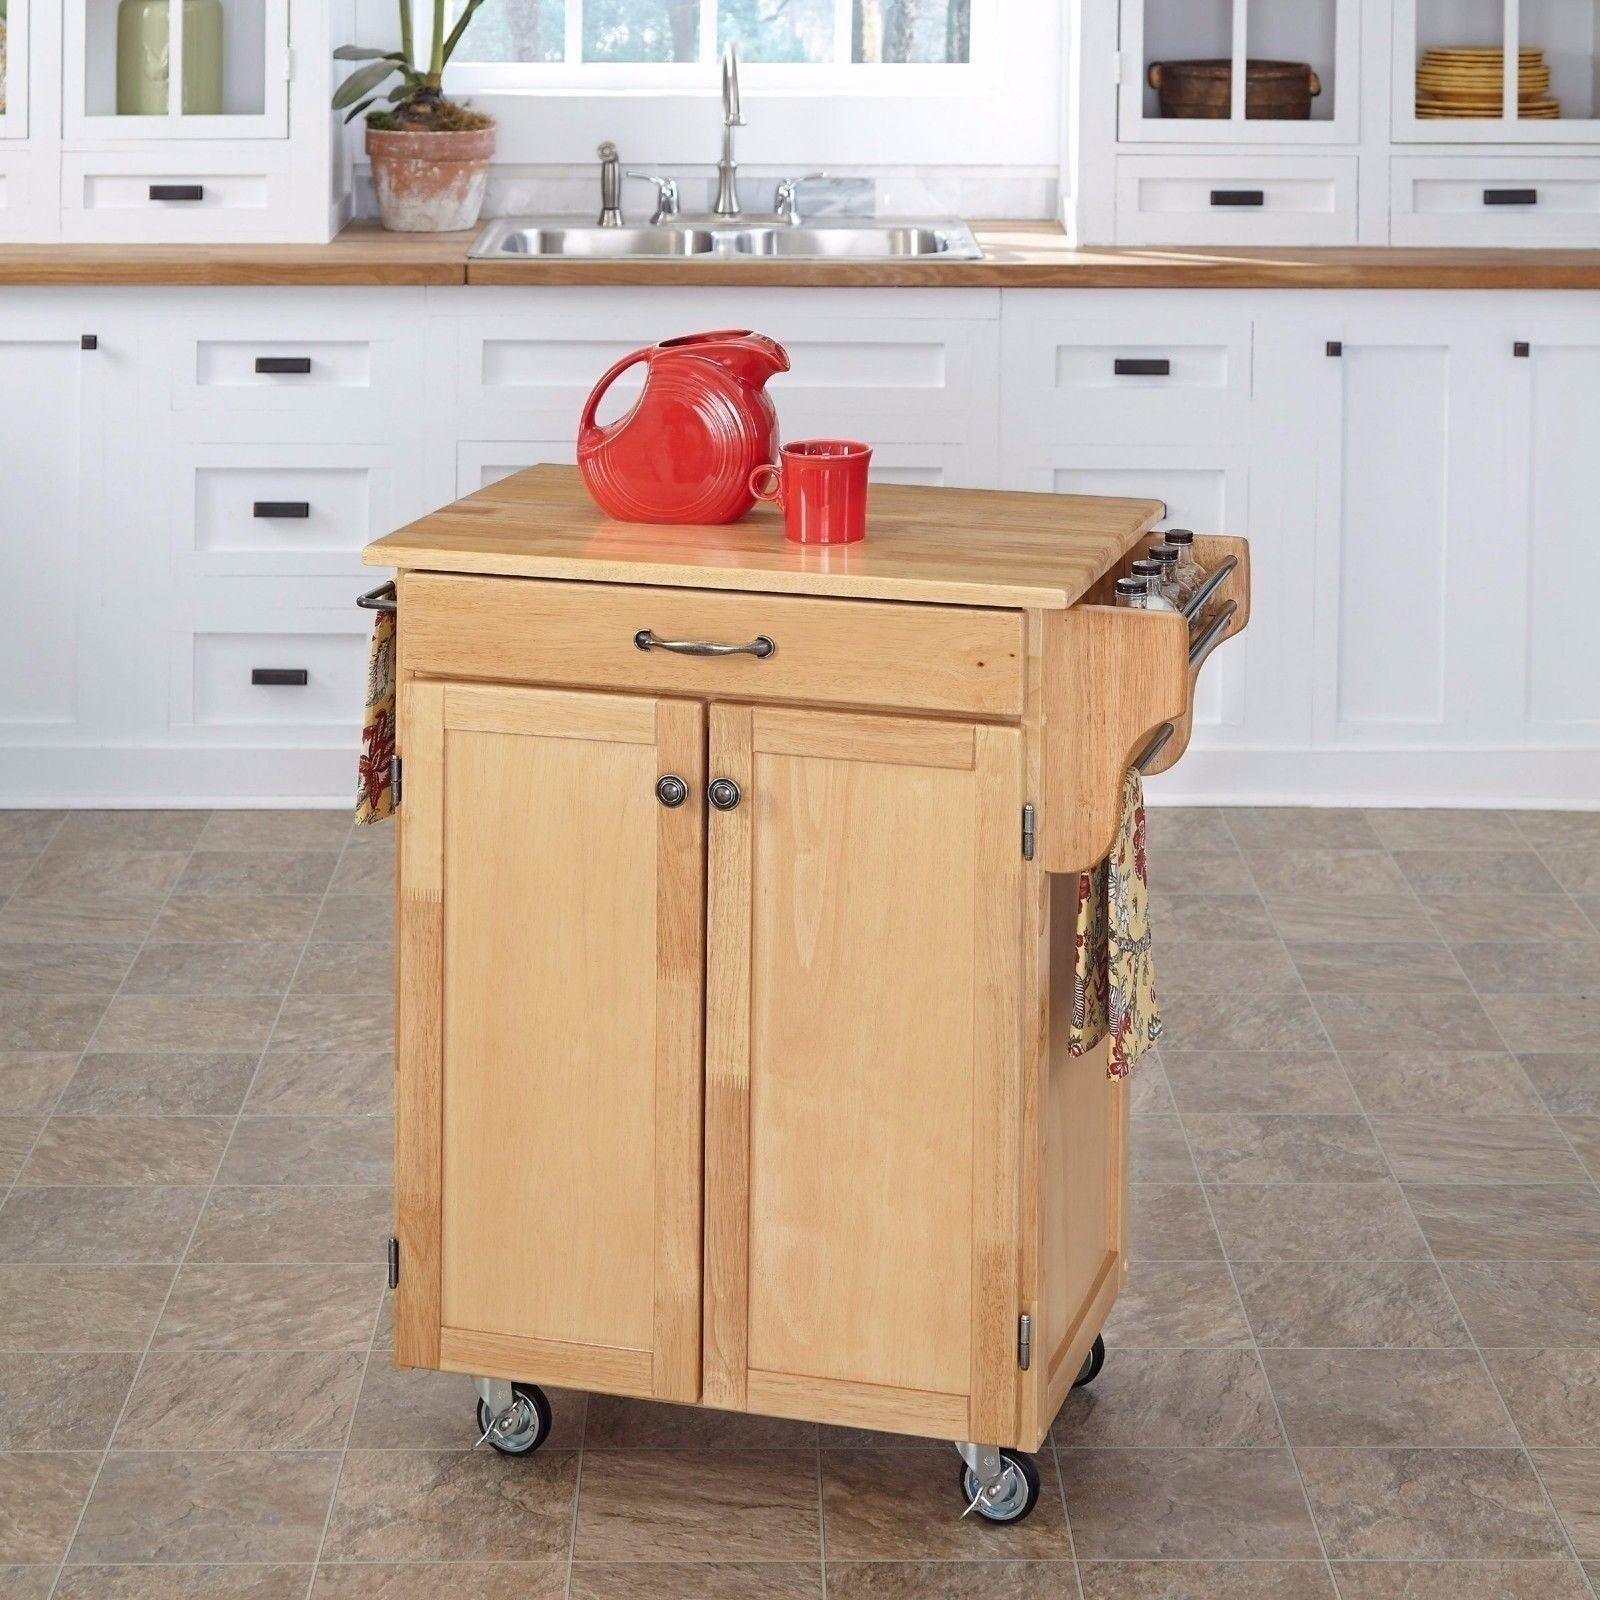 Kitchen Trolley Butcher Block : NEW Wood Kitchen Trolley Cart Island Butcher Block Cutting Board Table Natural eBay